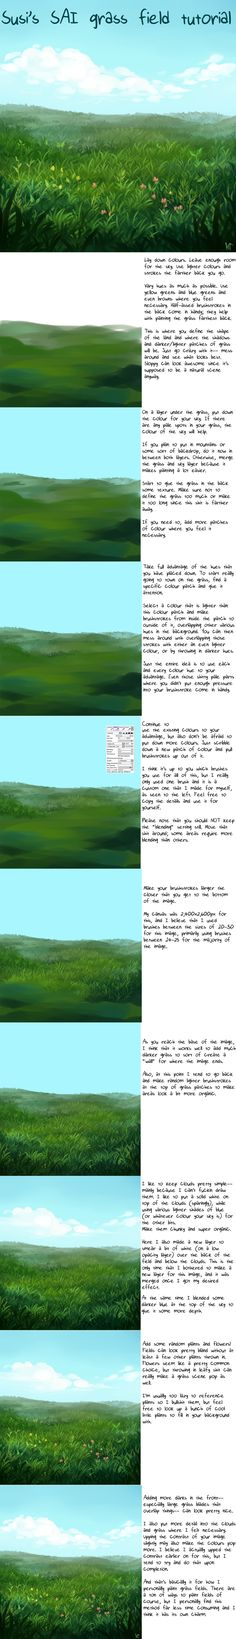 SAI Grass Field Tutorial by Susiron.deviantart.com on @deviantART